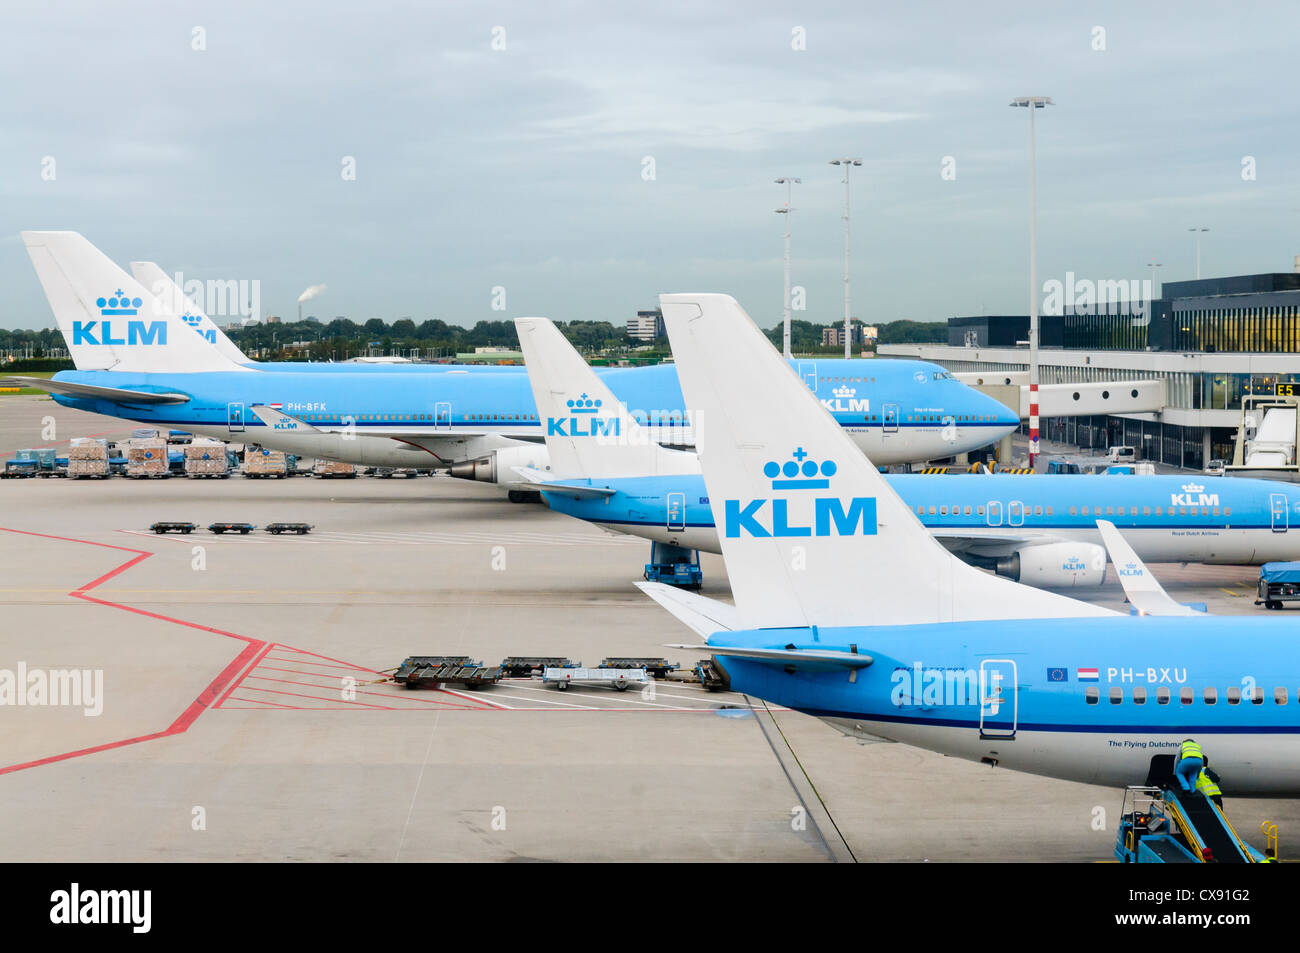 Air France KLM planes on the apron of Amsterdam Schiphol Airport - Stock Image